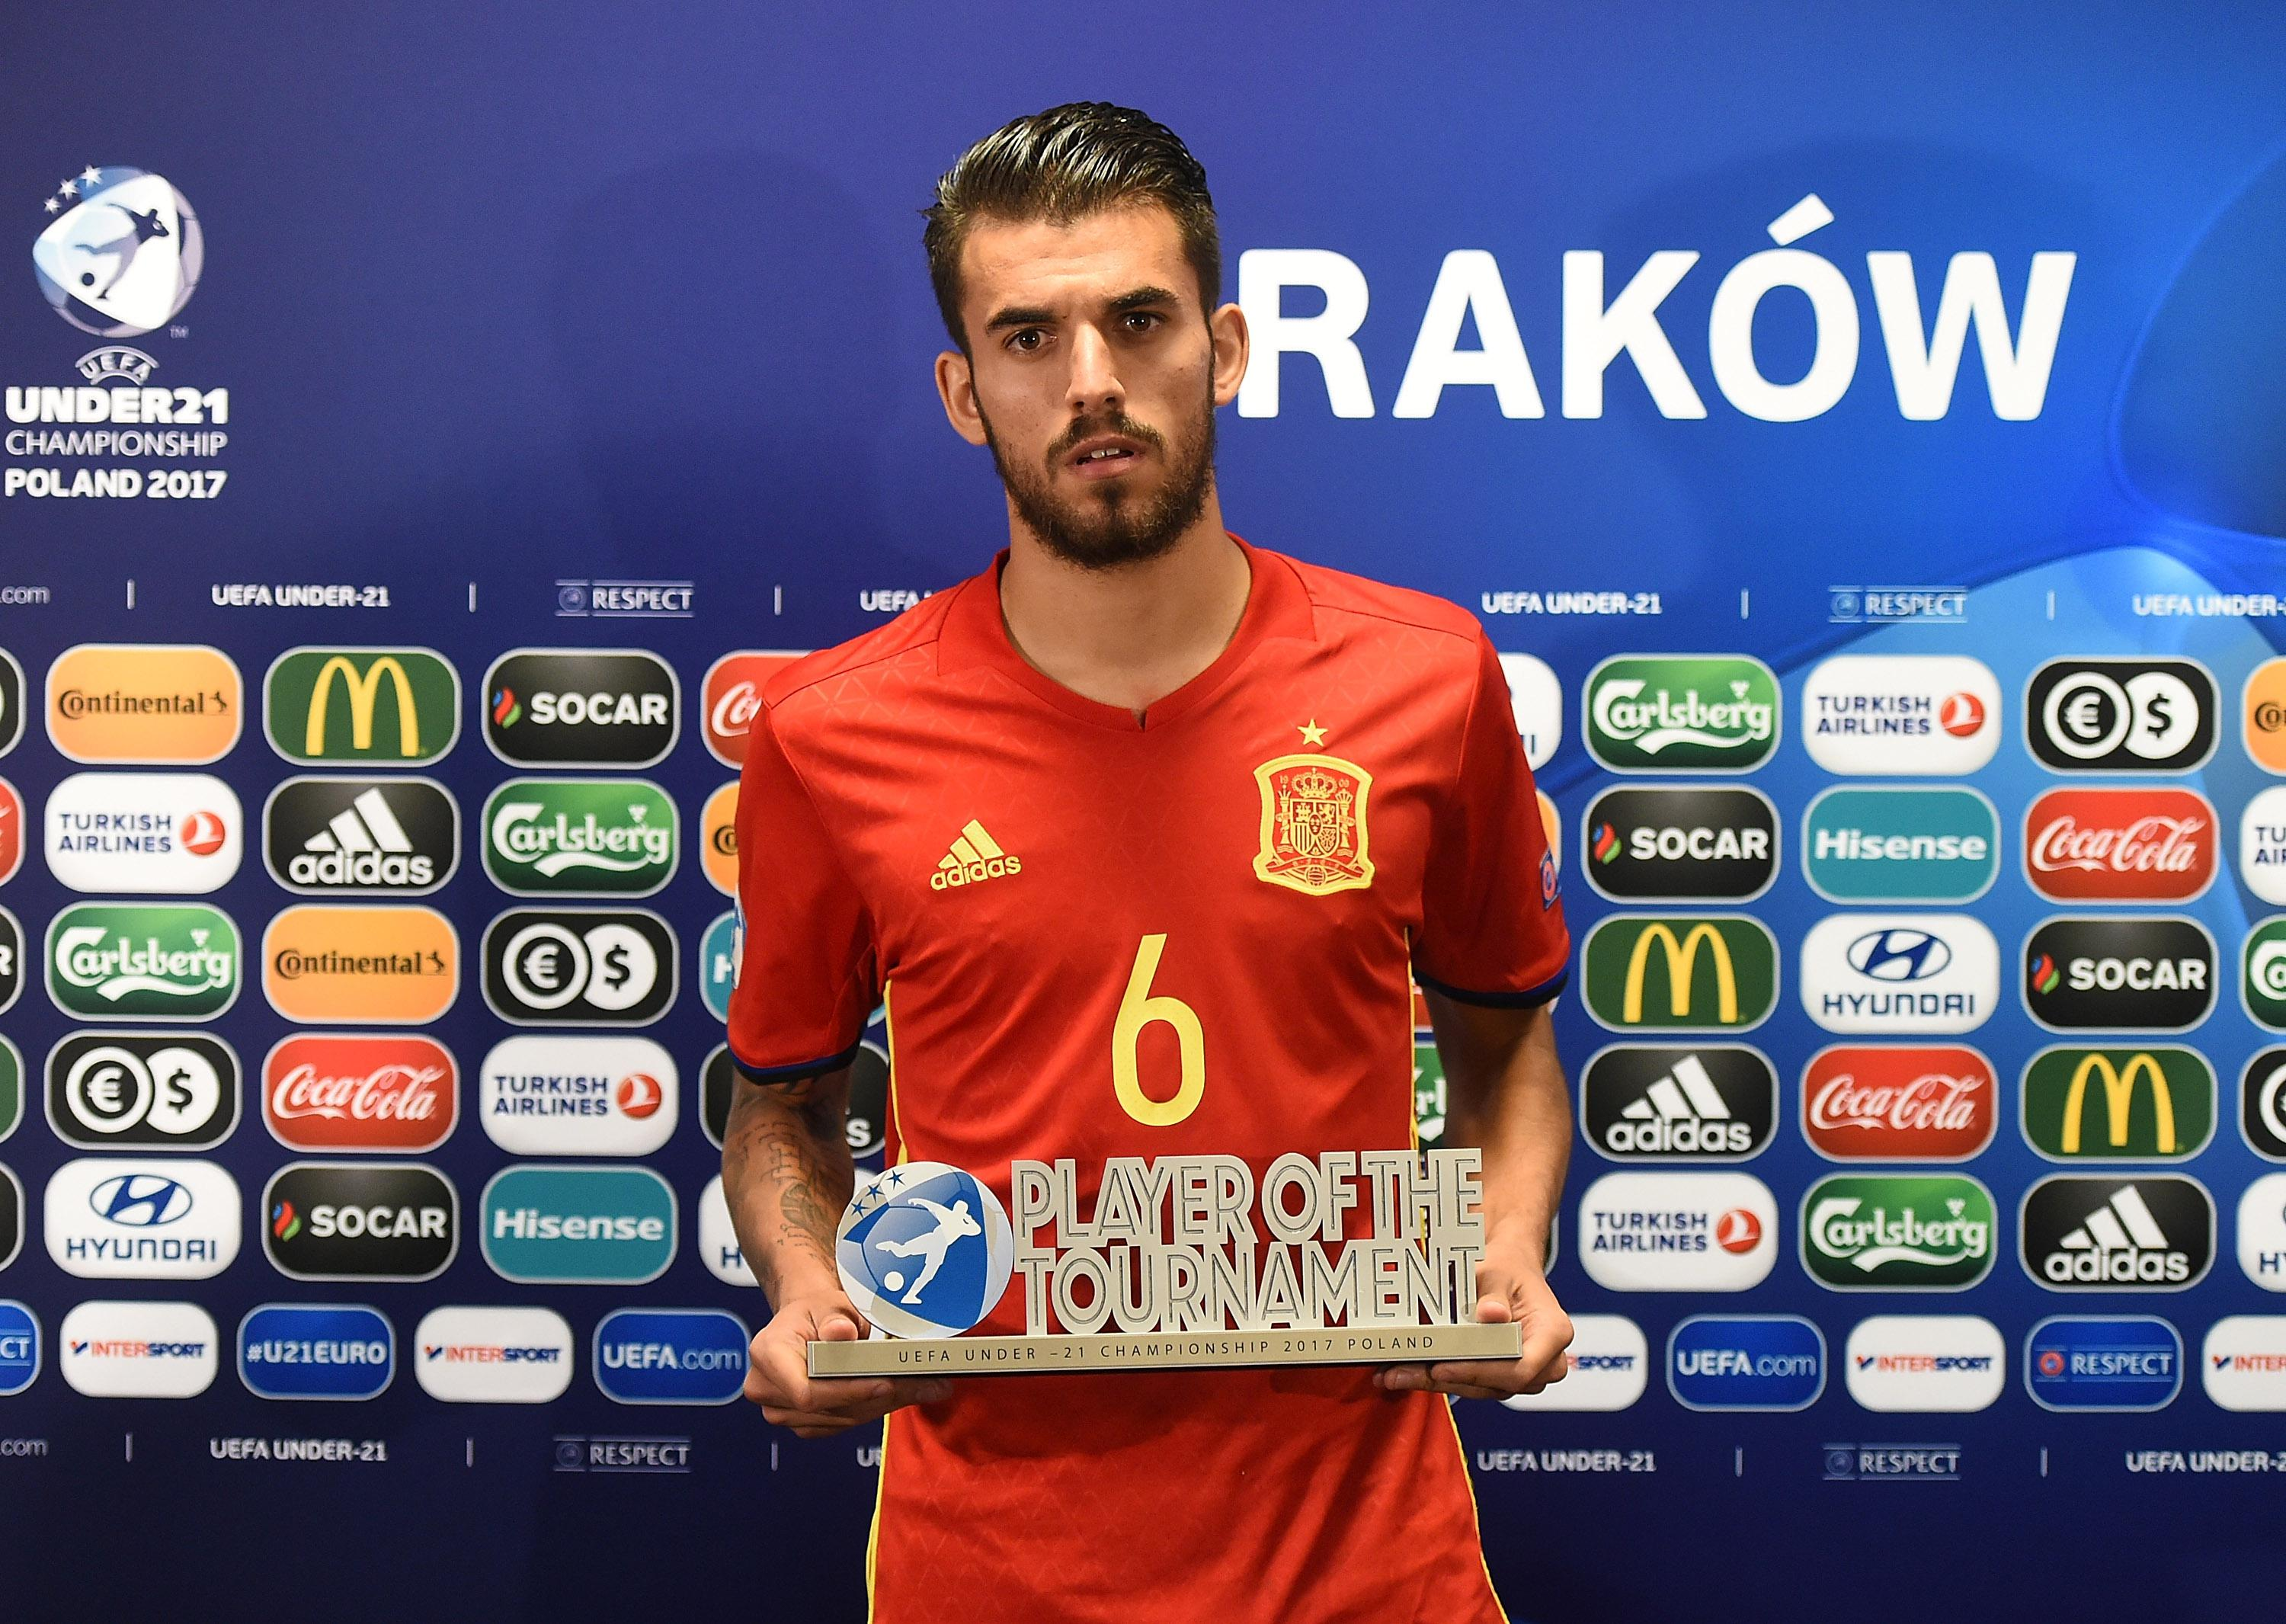 Ceballos looks 'delighted' to win Player of the Tournament after Spain's defeat to Germany